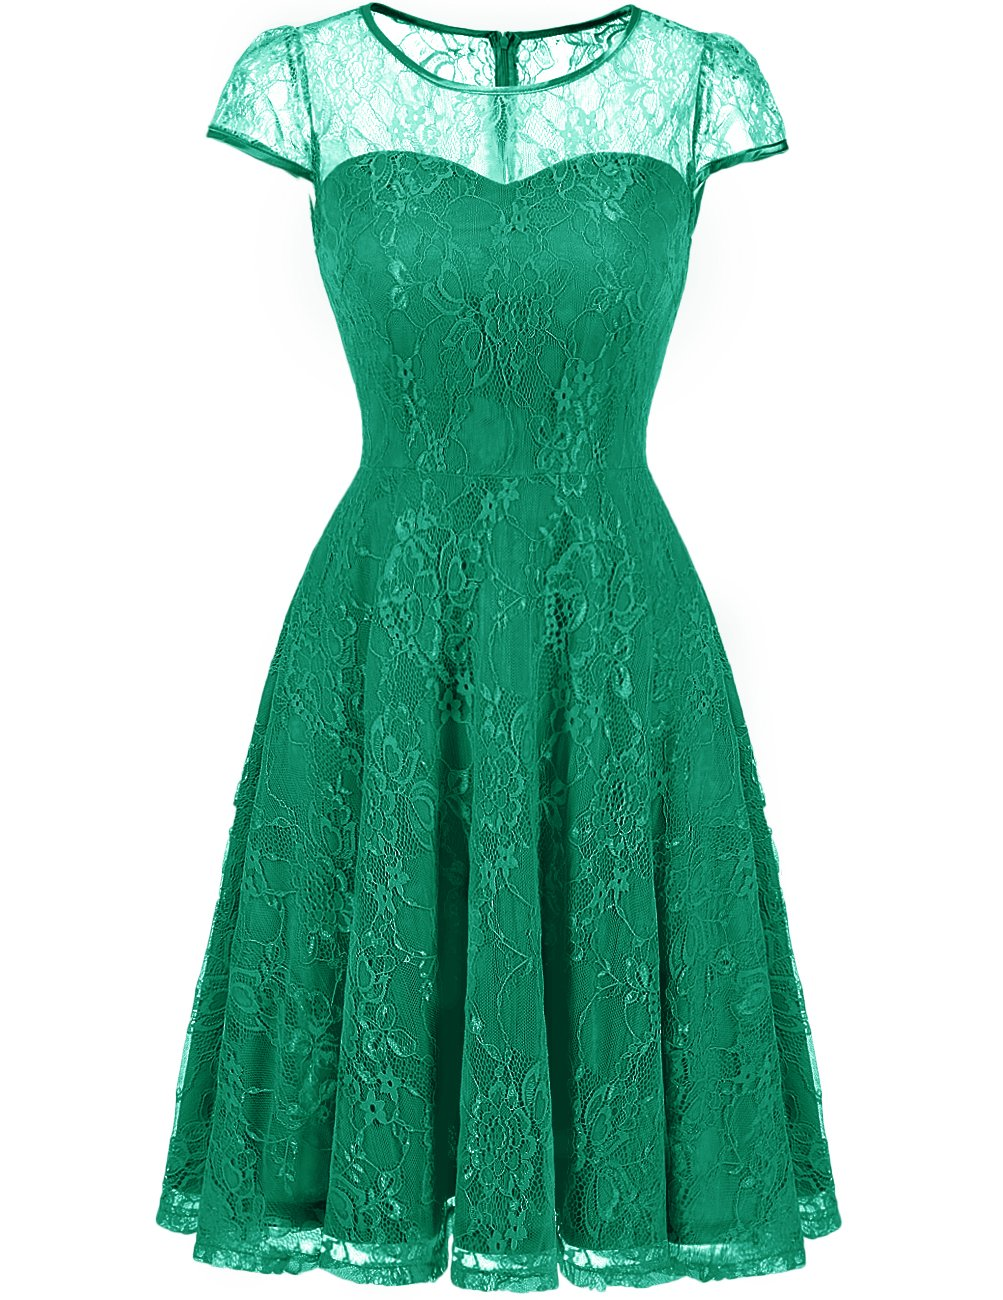 DRESSTELLS Women's Bridesmaid Dress Retro Lace Swing Party Dresses with Cap-Sleeves Green 3XL